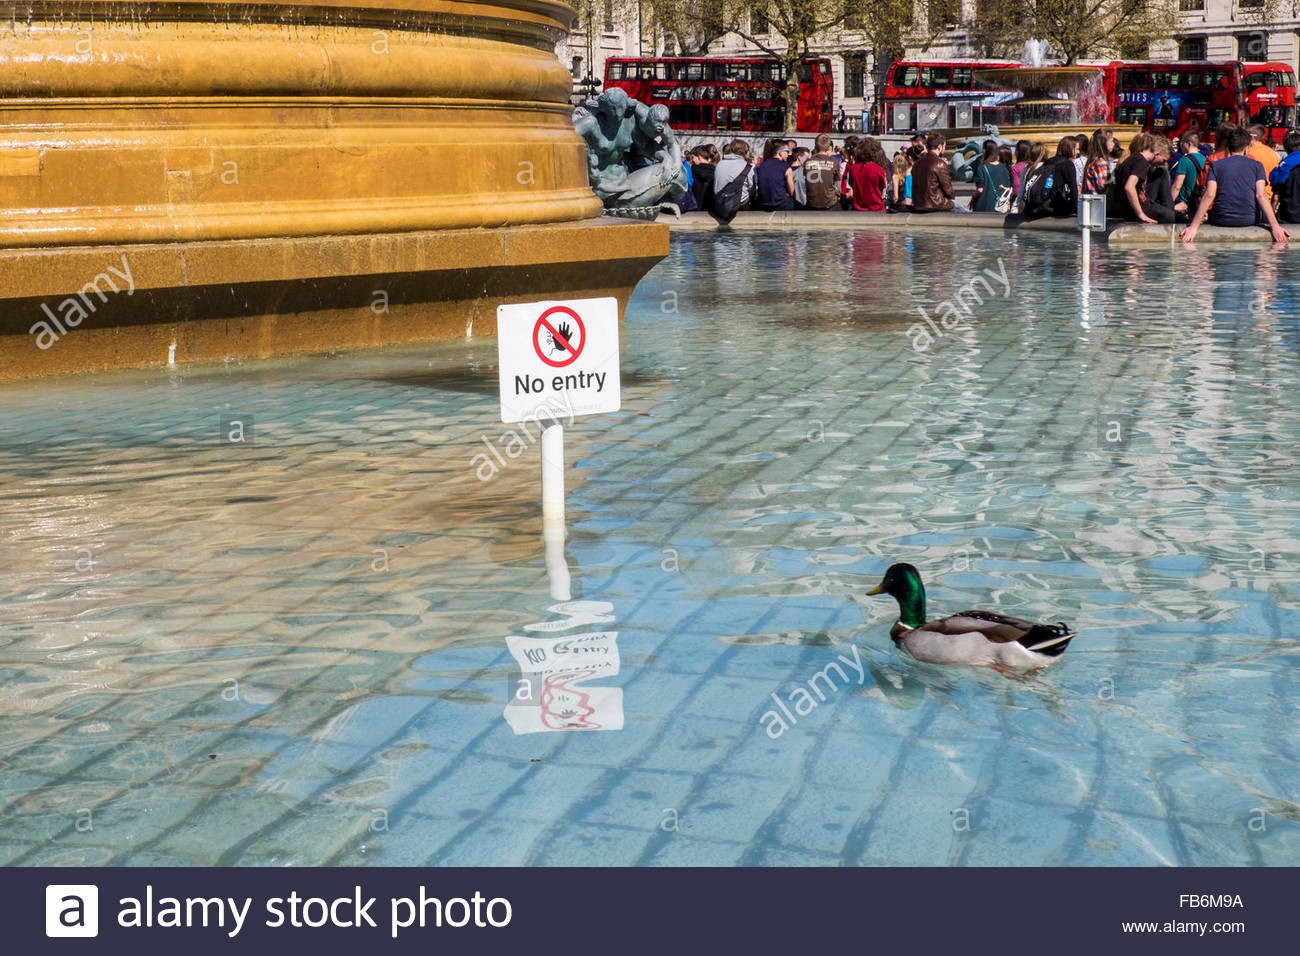 London,Trafalgar Square - duck defies no entry sign in fountain